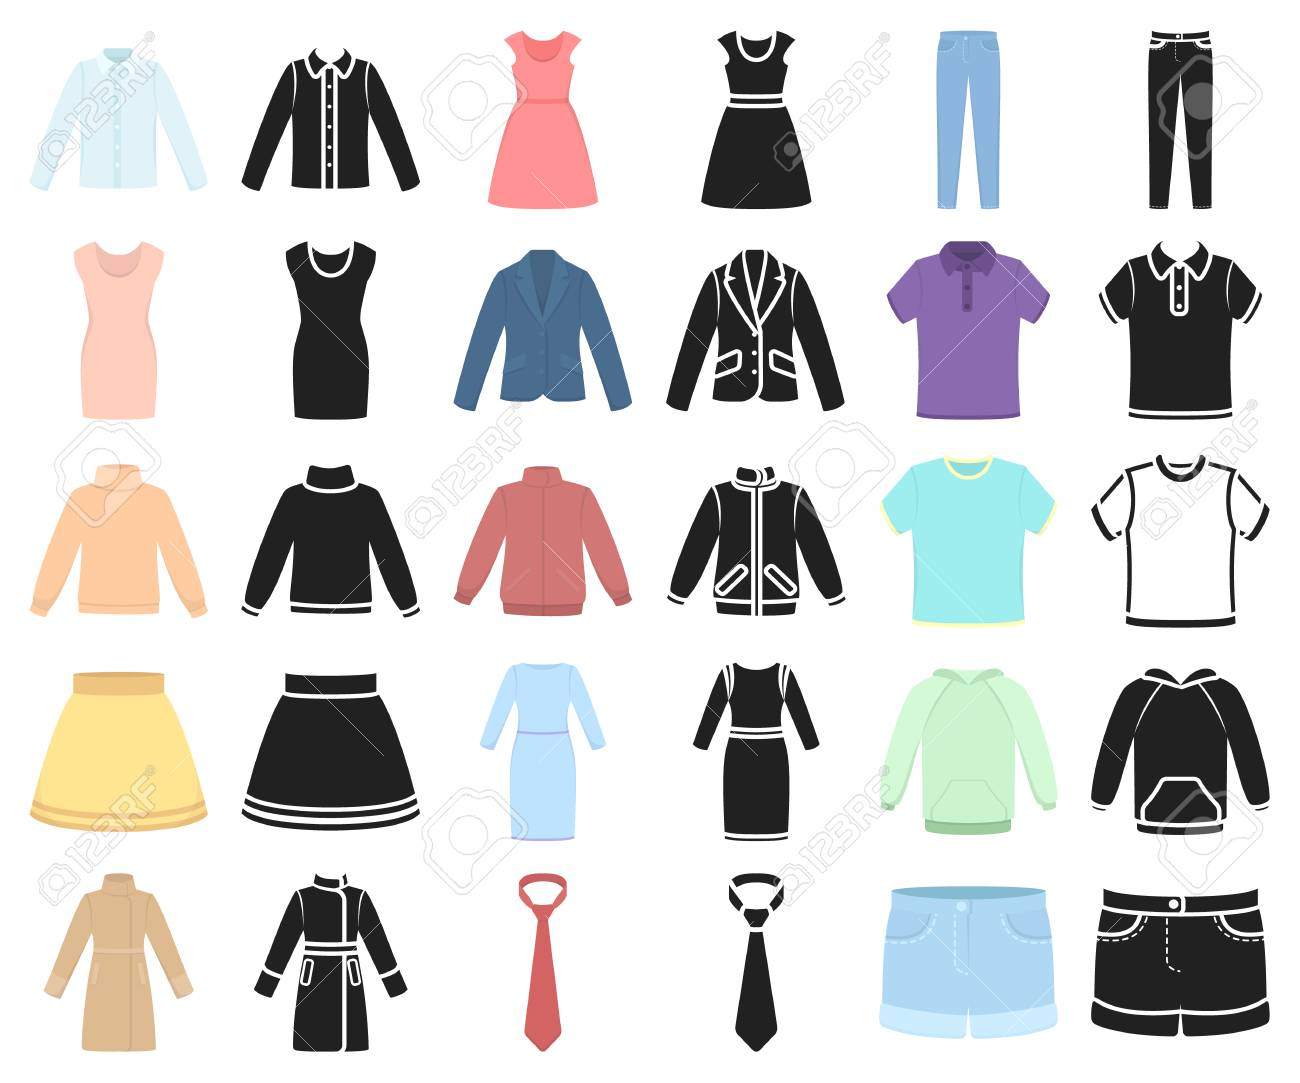 Different Kinds Of Clothes Cartoon Black Icons In Set Collection Royalty Free Cliparts Vectors And Stock Illustration Image 117297306